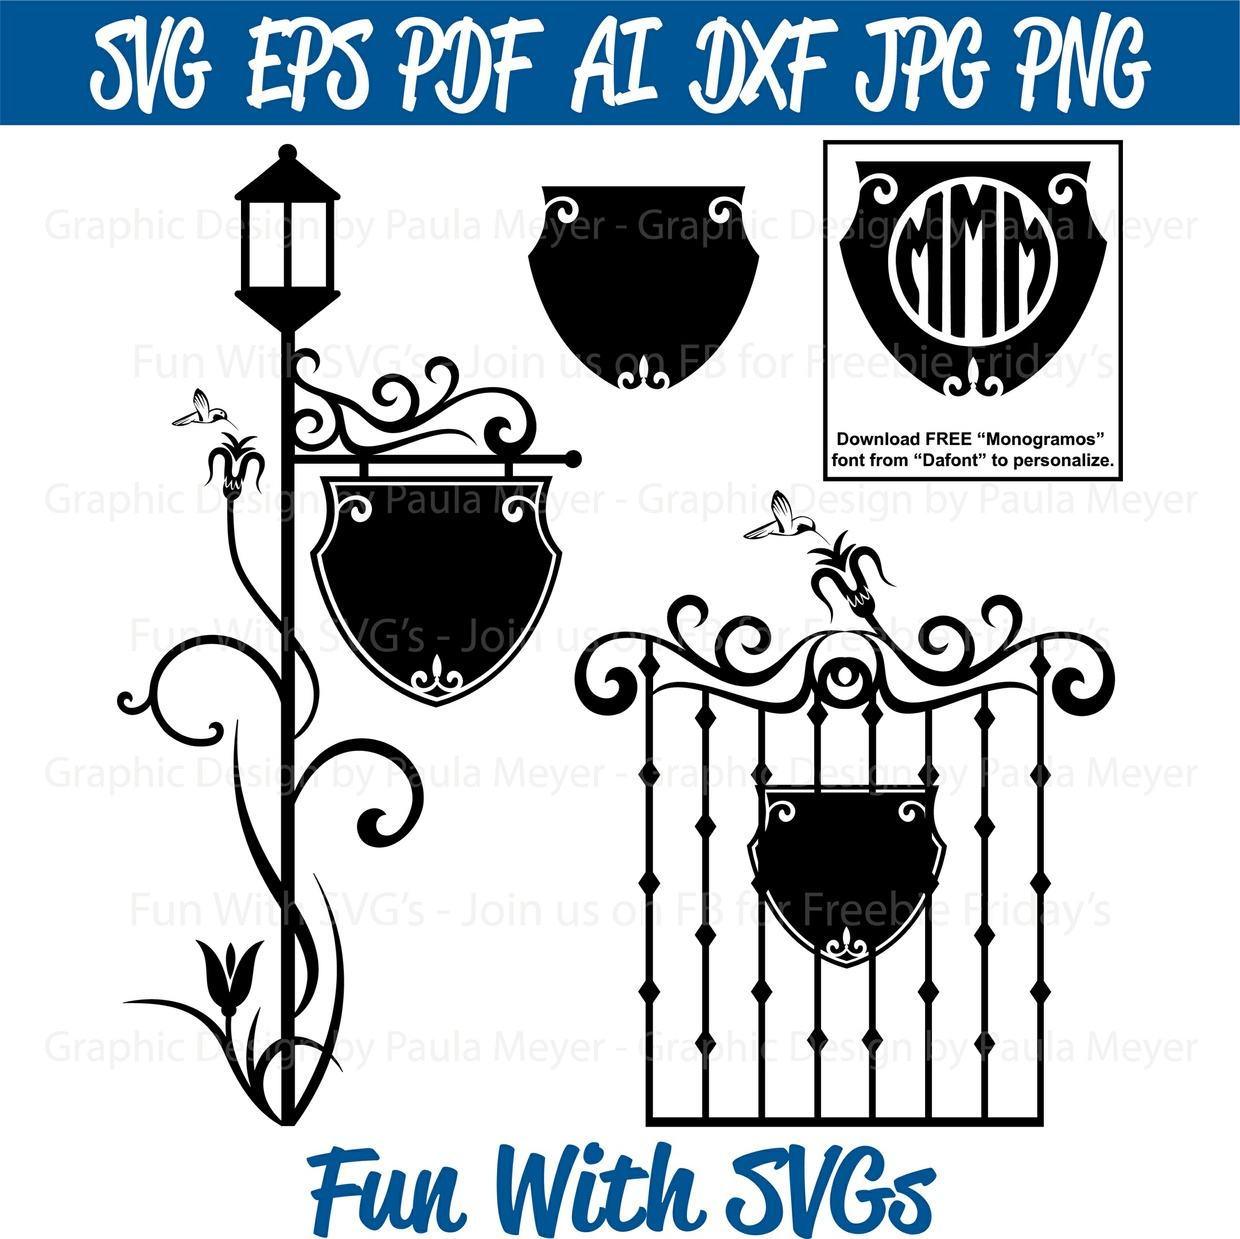 Gate and Lamp Post - SVG Cut File, High Resolution Printable Graphics and Editable Vector Art